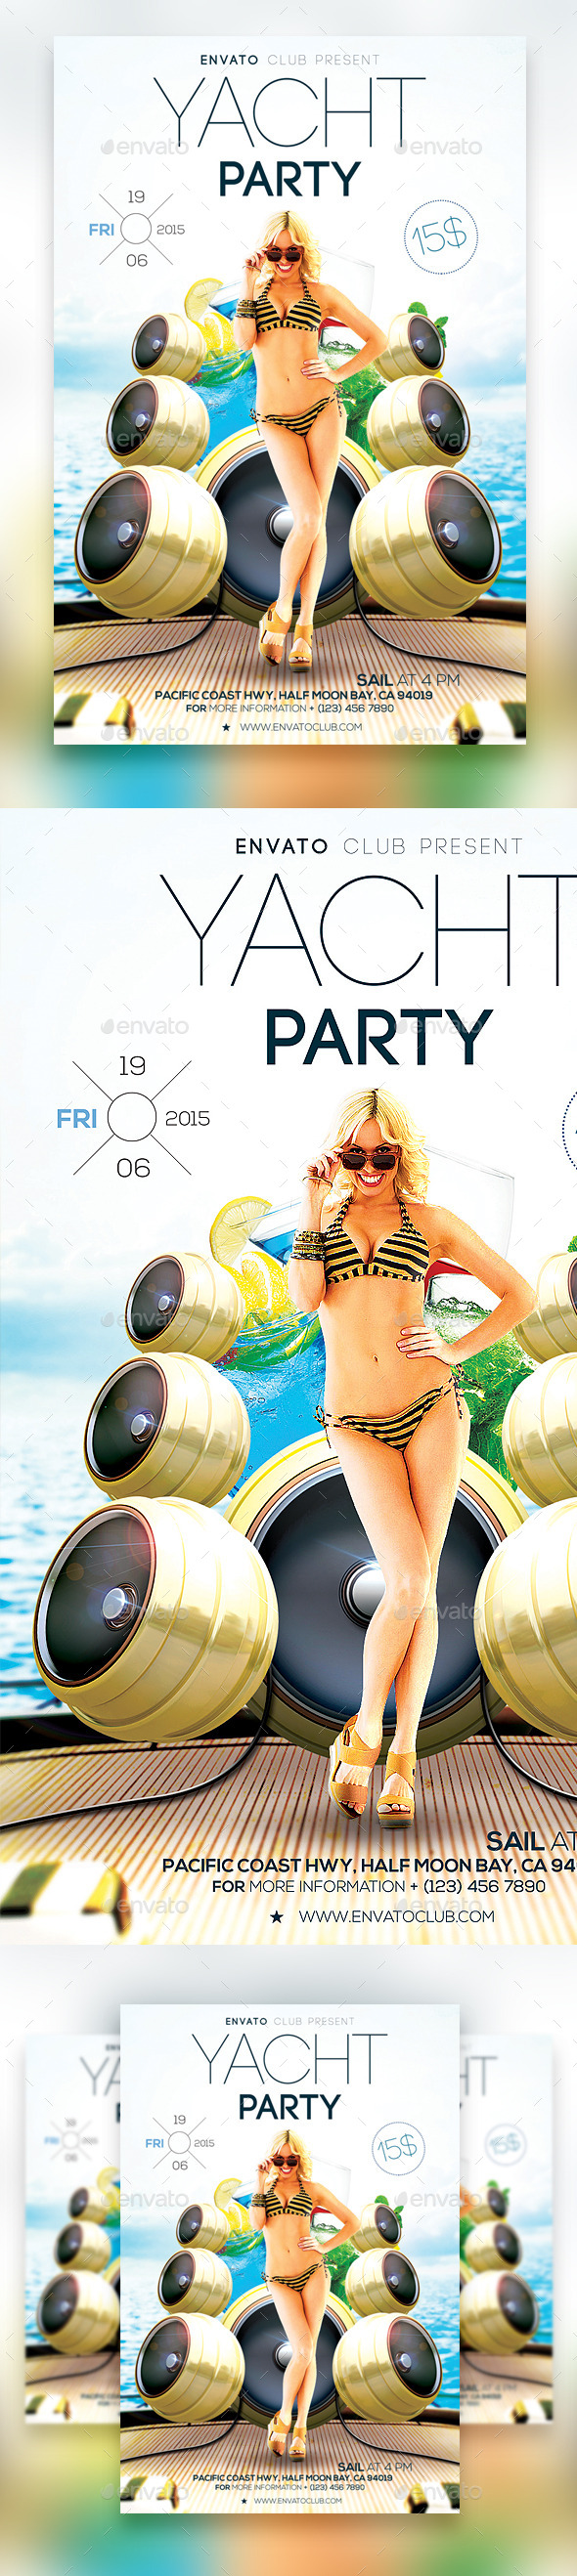 GraphicRiver Yacht Party Flyer Vol.2 11305084